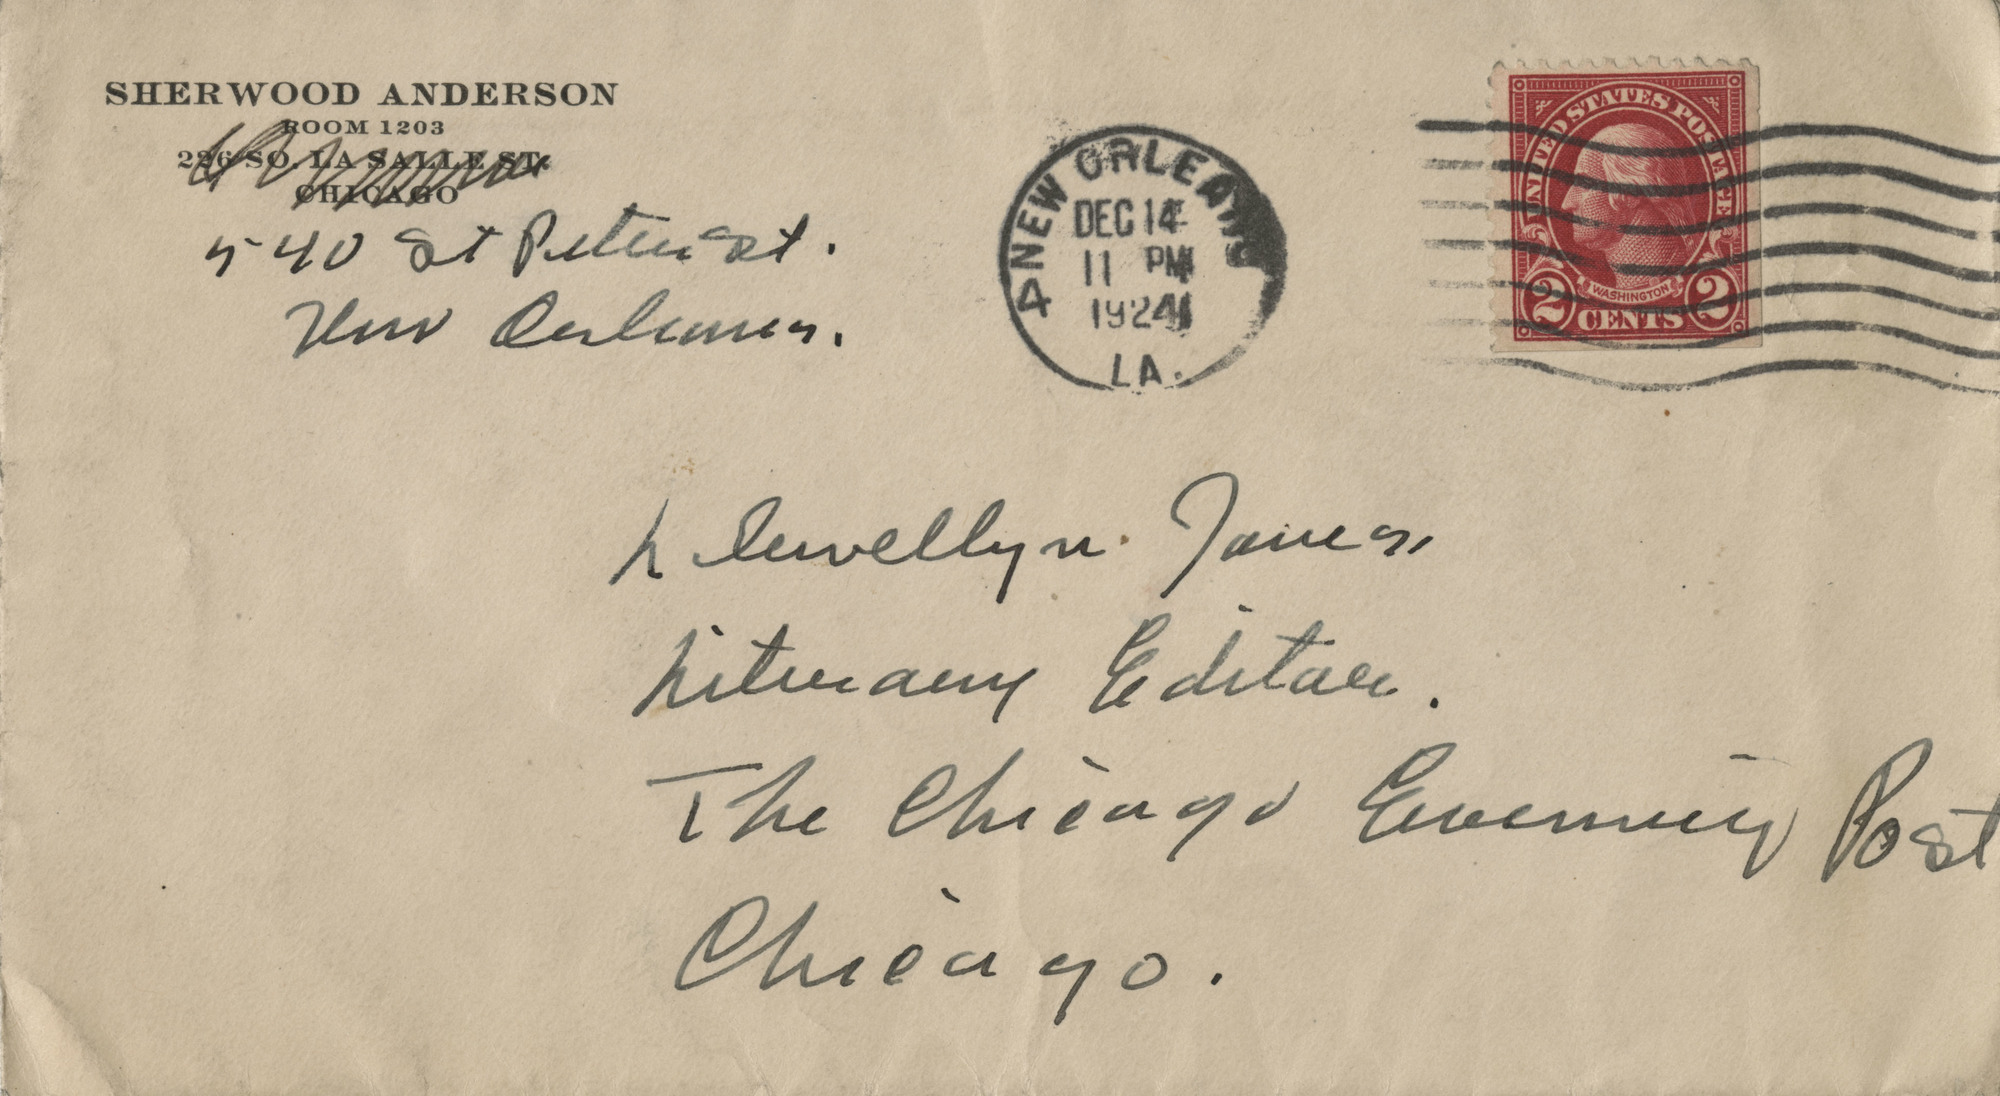 Ms2015-044_AndersonSherwood_Letter_1924_1214env.jpg